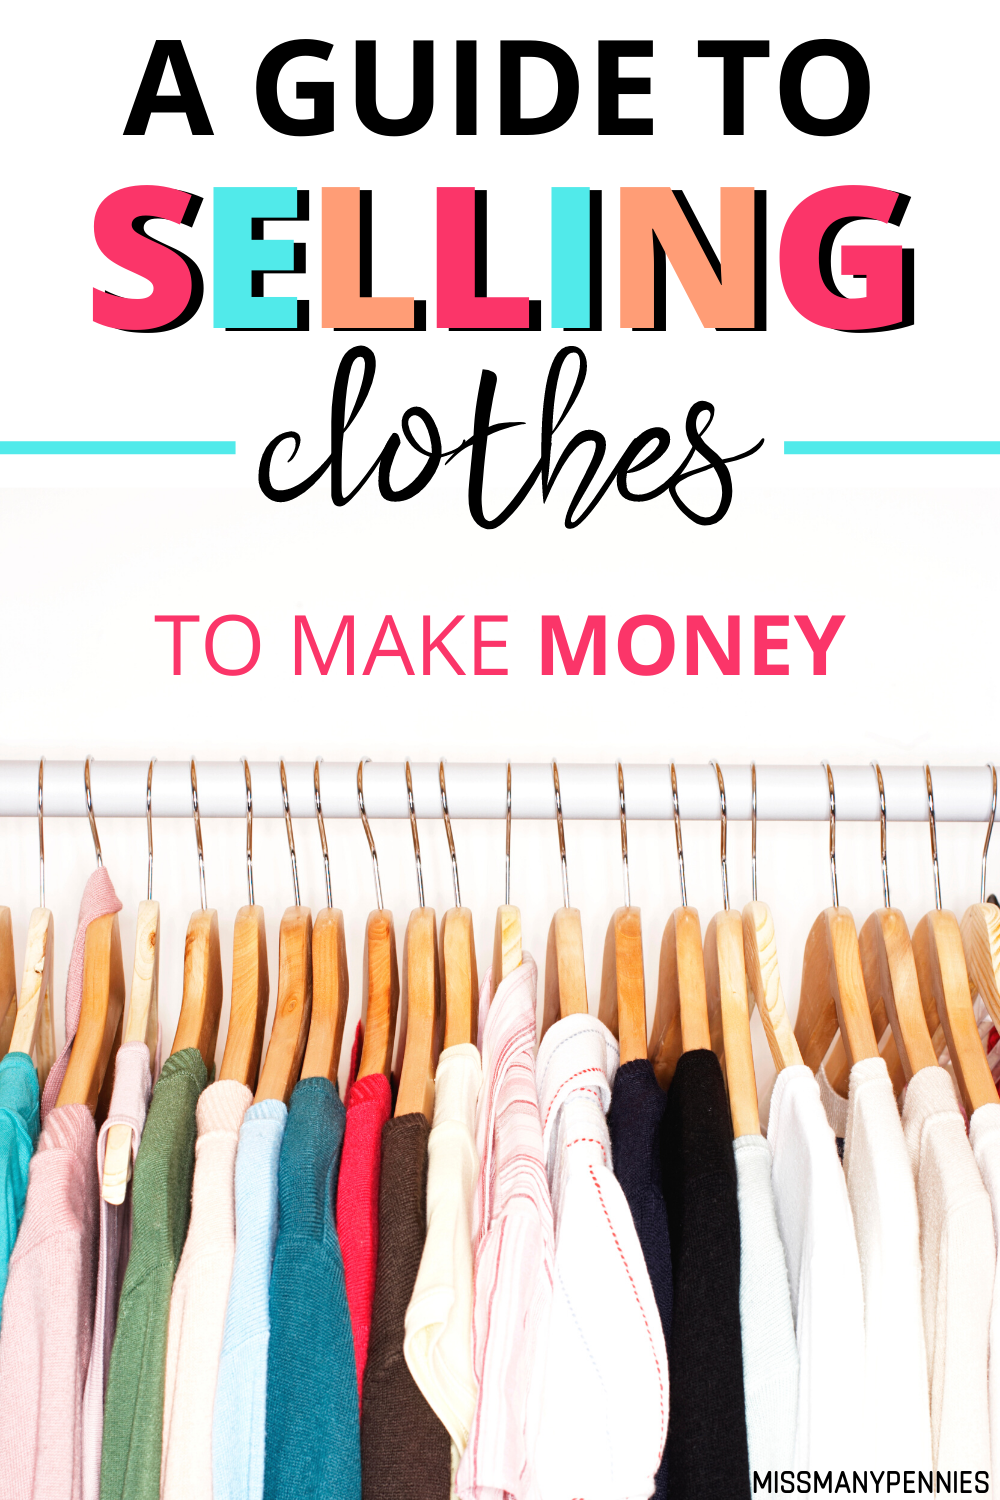 How To Sell Clothes For Cash A Guide To Selling Second Hand Clothes Selling Clothes Unwanted Clothes How To Sell Clothes